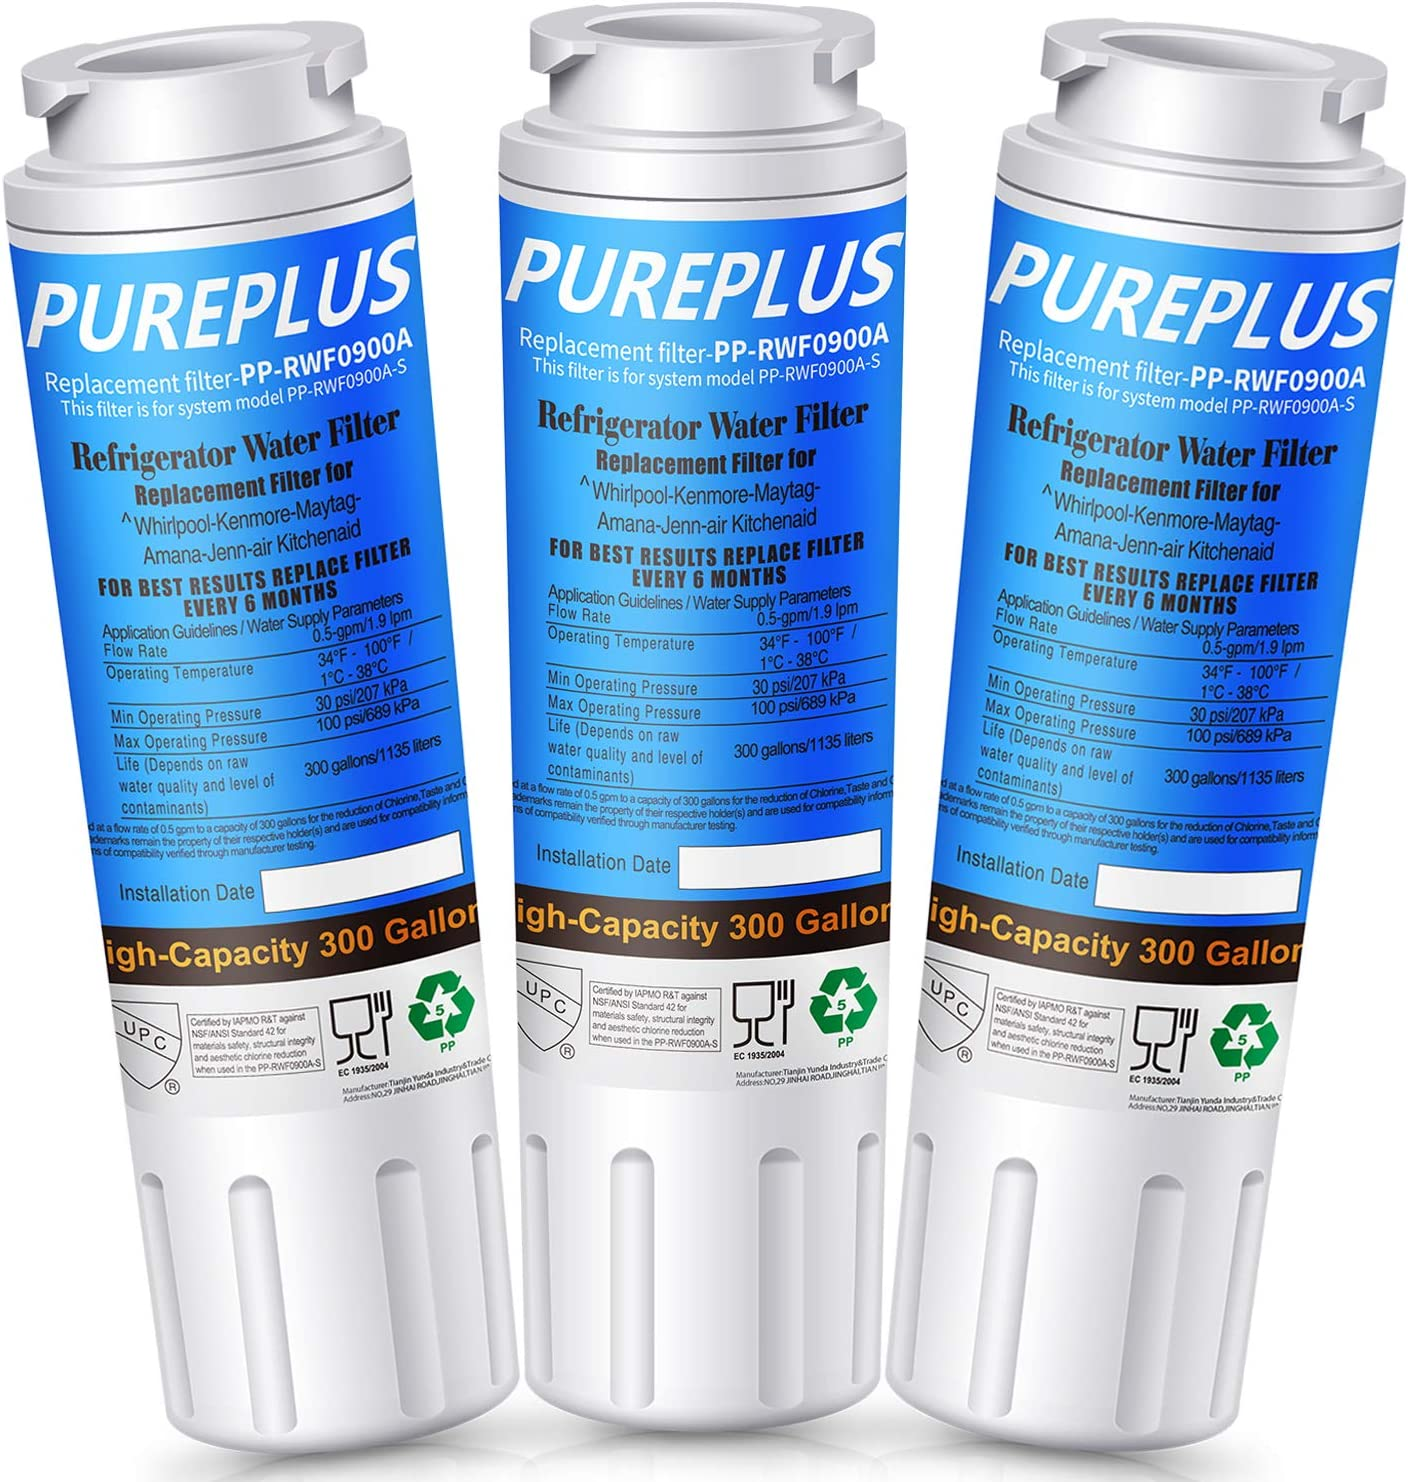 PUREPLUS UKF8001 Replacement for Maytag UKF8001P, Whirlpool EDR4RXD1, Everydrop Filter 4, PUR 4396395, Puriclean II, UKF8001AXX-200, UKF8001AXX-750, RWF0900A, RFC0900A Refrigerator Water Filter, 3Pack